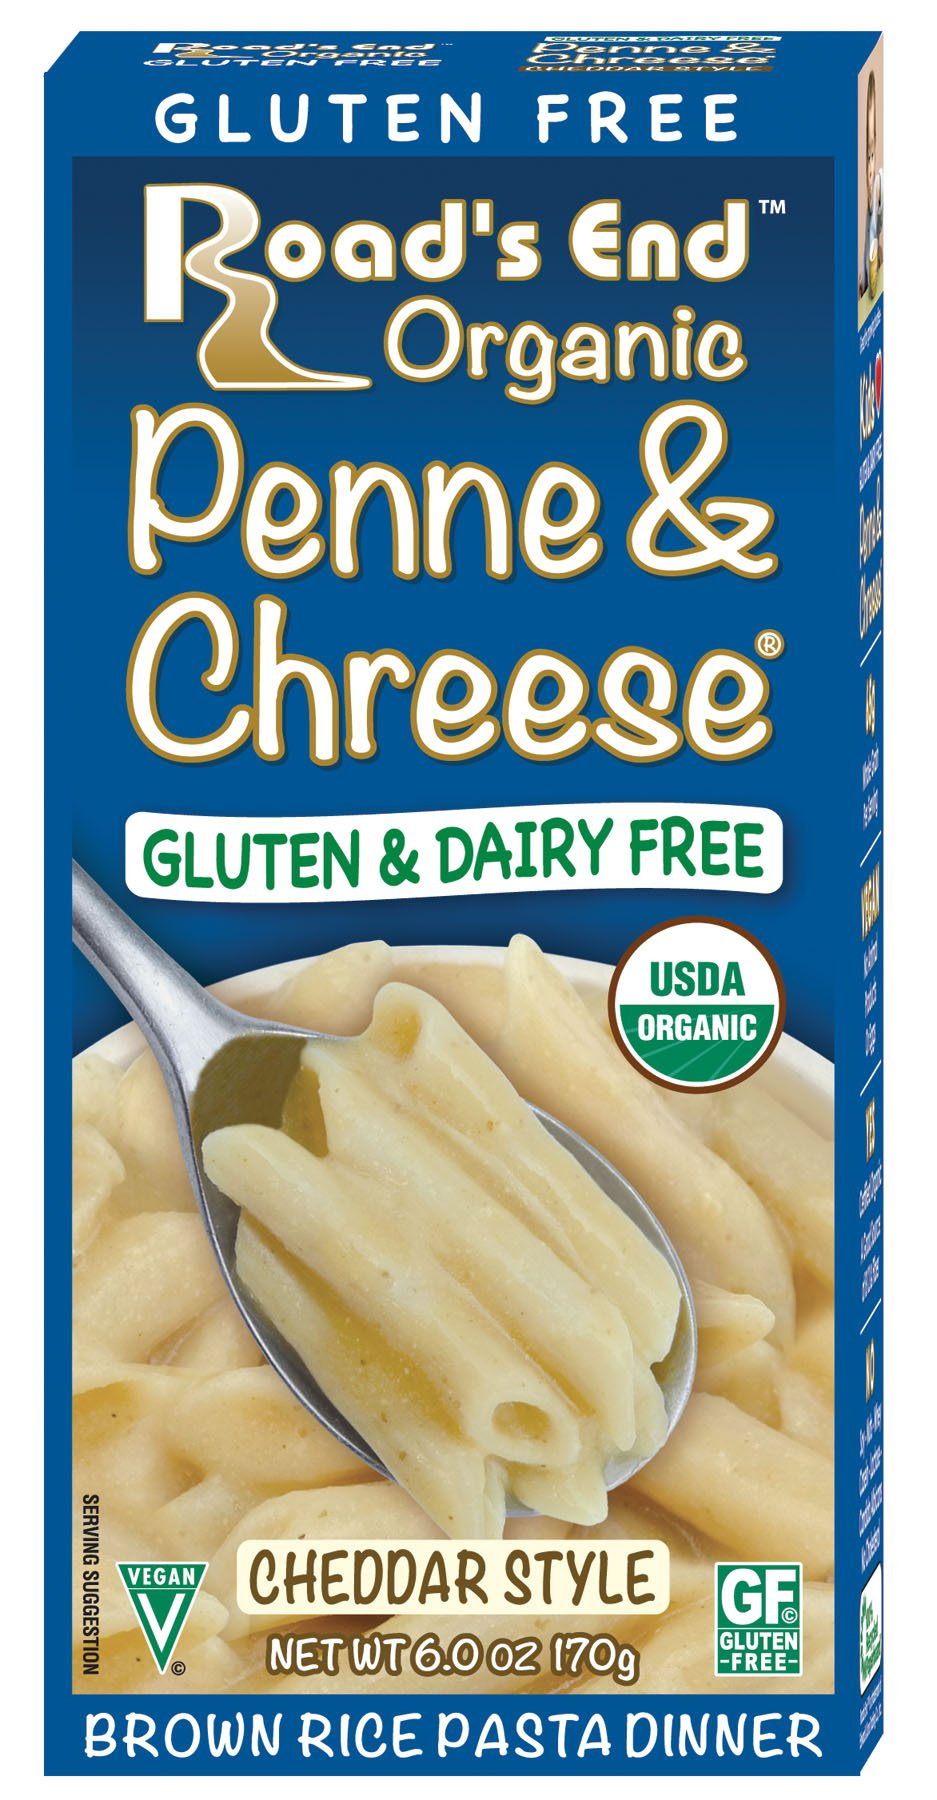 Road's End Organics Gluten Free Penne and Chreese, Organic, 6-Ounce Boxes (Pack of 12) by Road's End Organics